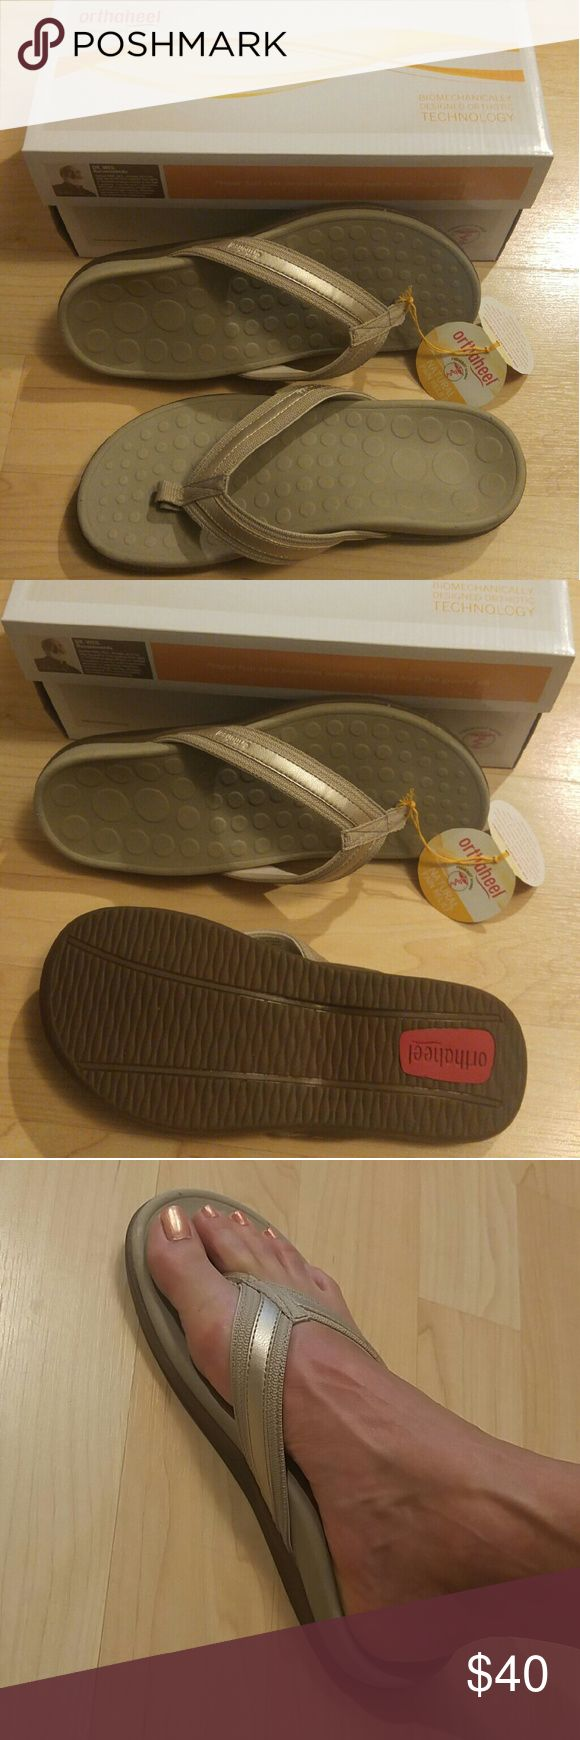 Orthoheel Orthotic Flip Flops With high arch support Shoes Sandals